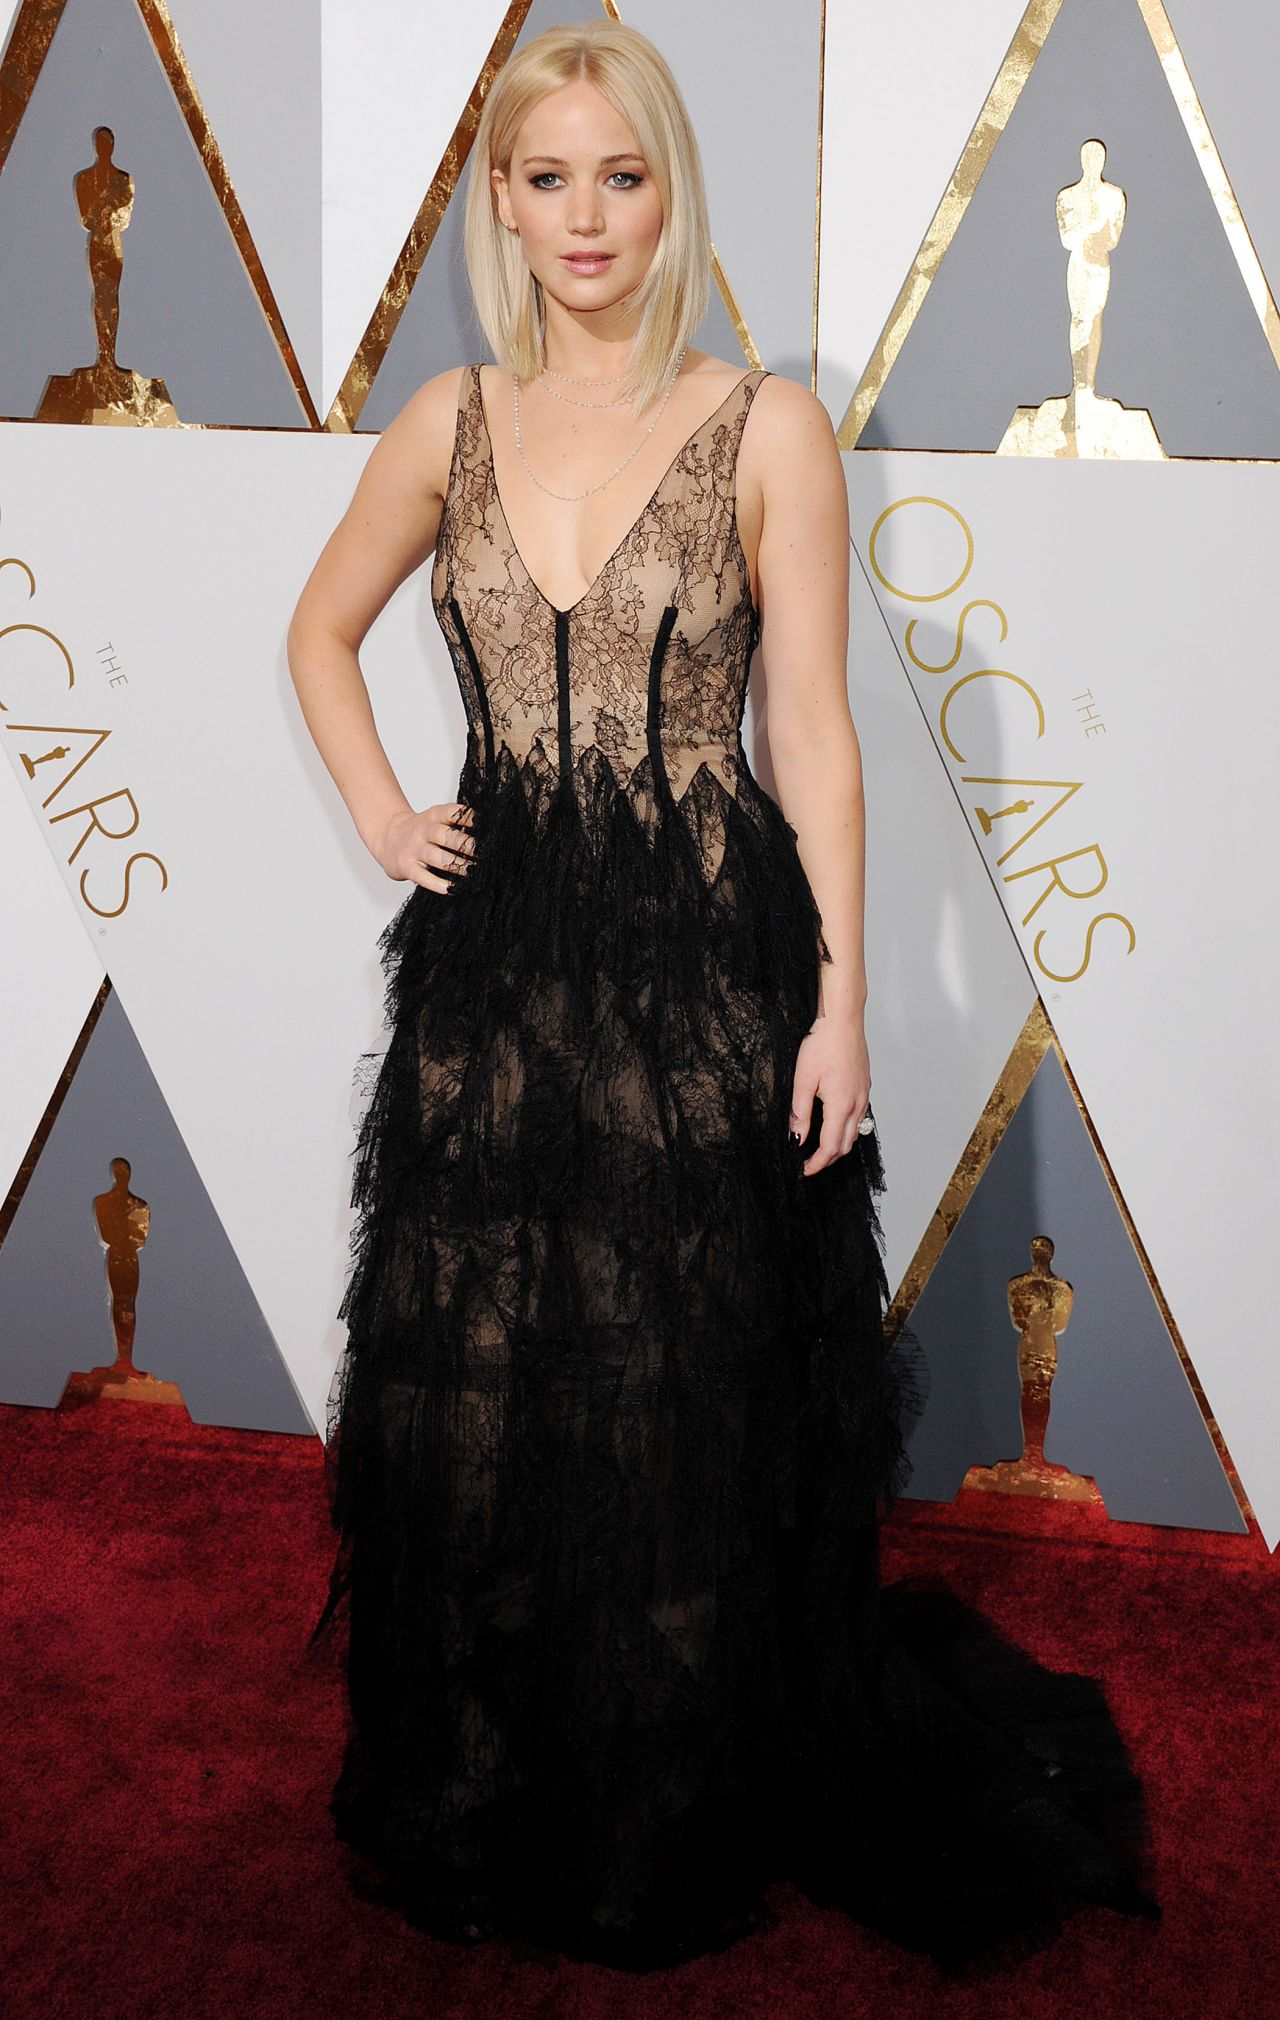 jennifer-lawrence-oscars-2016-in-hollywood-ca-2-28-2016-10